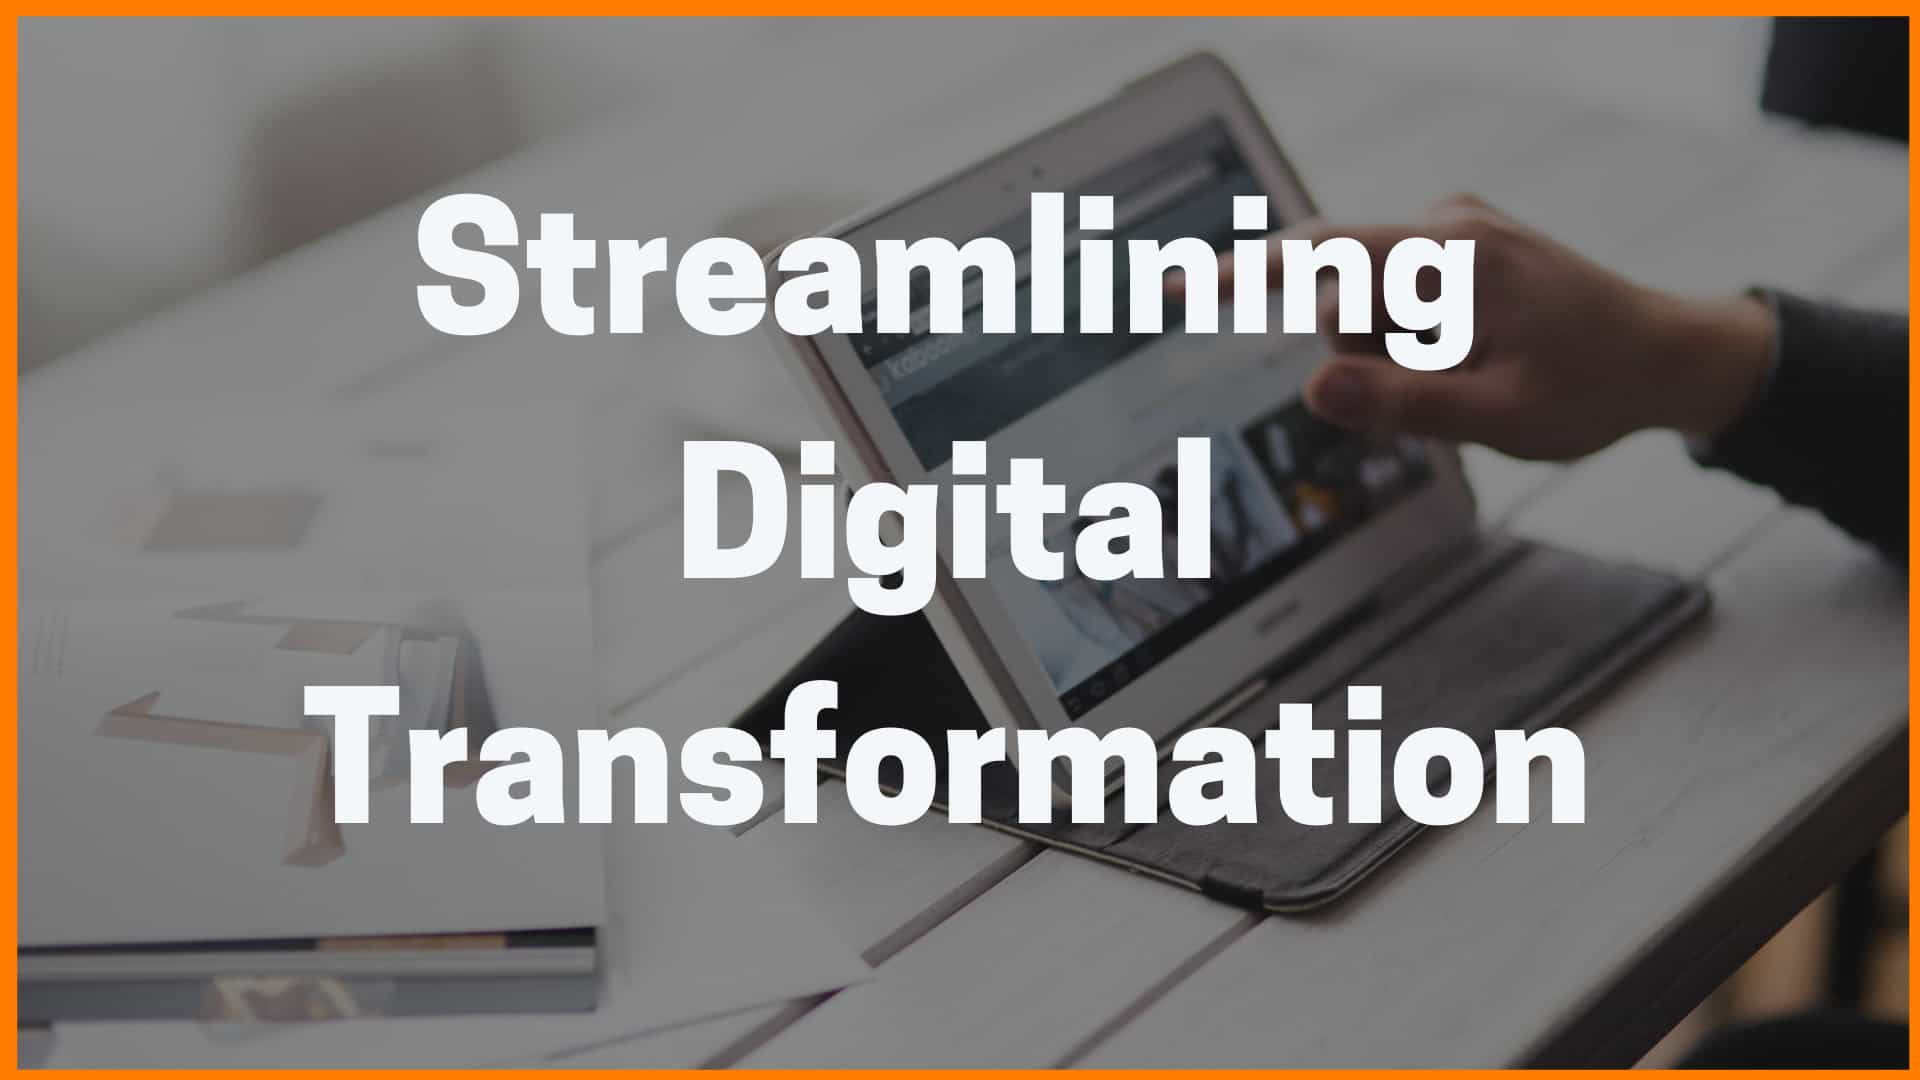 Streamlining Digital Transformation: What You Should & Shouldn't Be Spending On